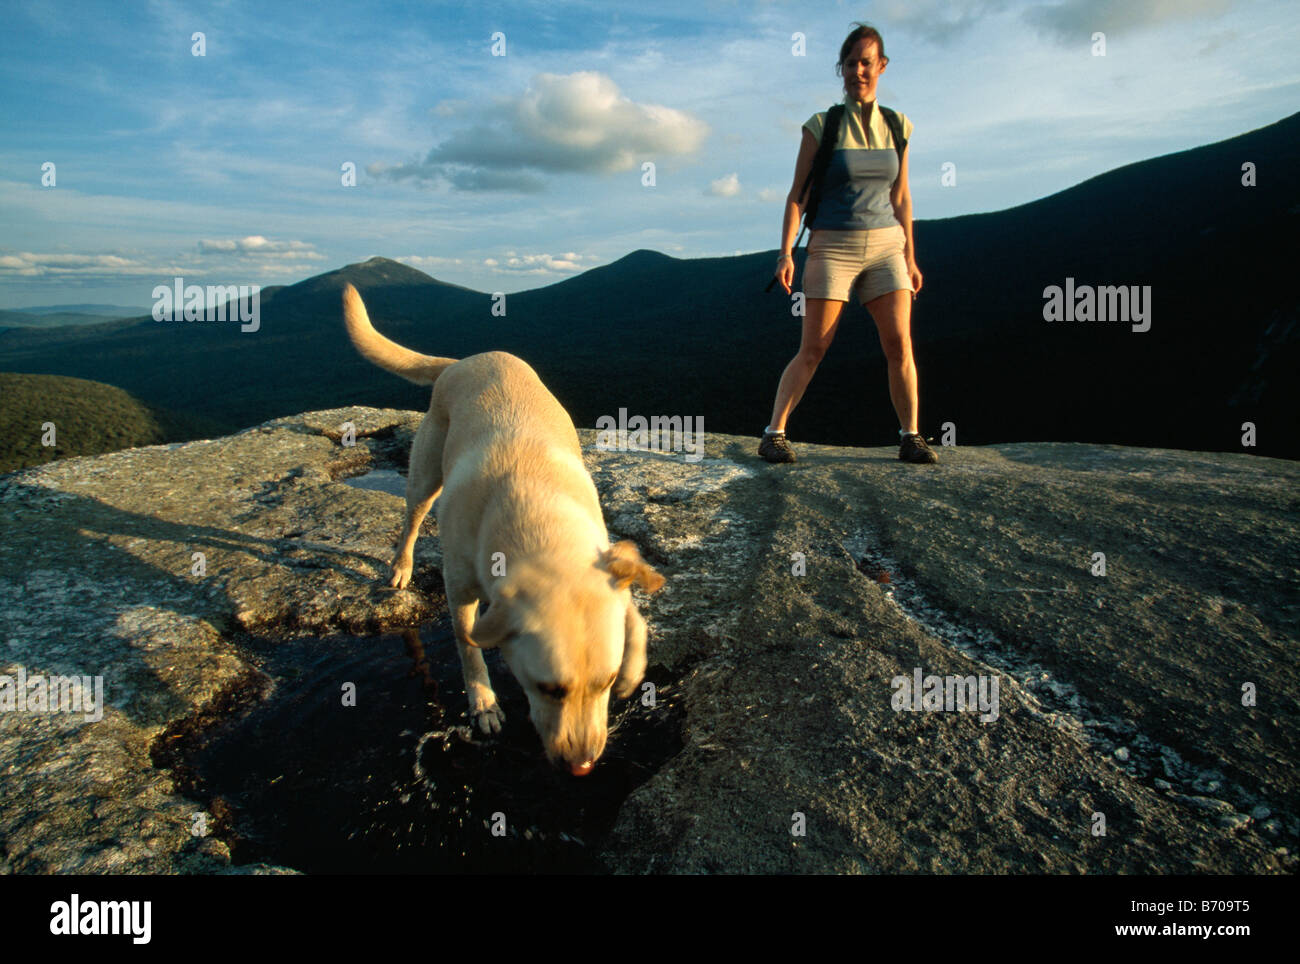 A woman and a dog on a mountain top, Newry, Maine. - Stock Image